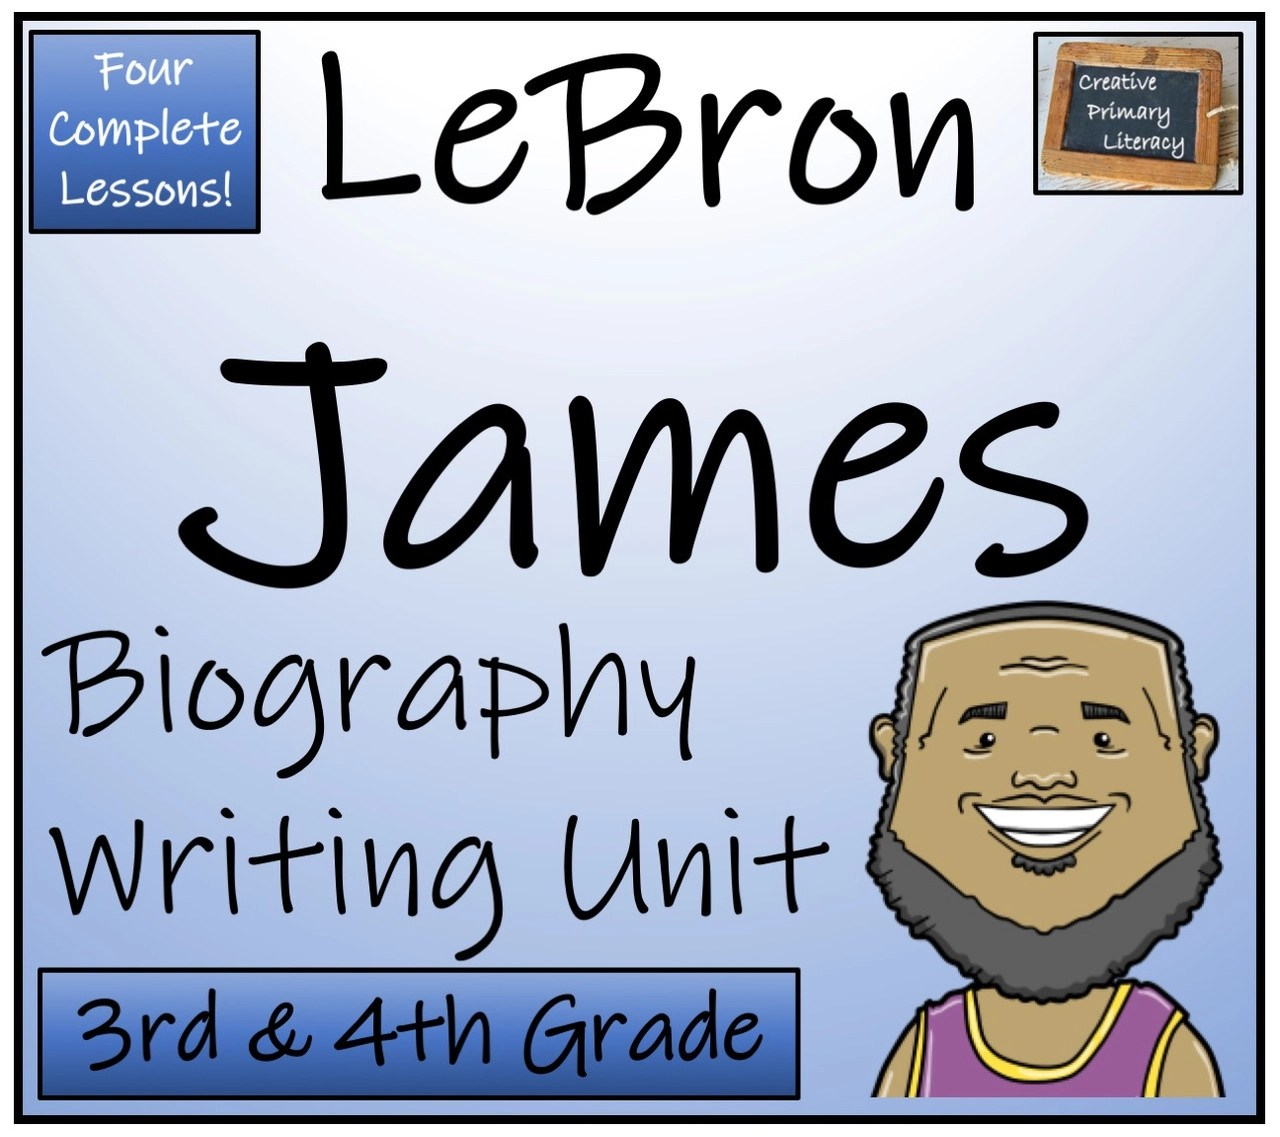 medium resolution of LeBron James - 3rd \u0026 4th Grade Biography Writing Activity - Amped Up  Learning